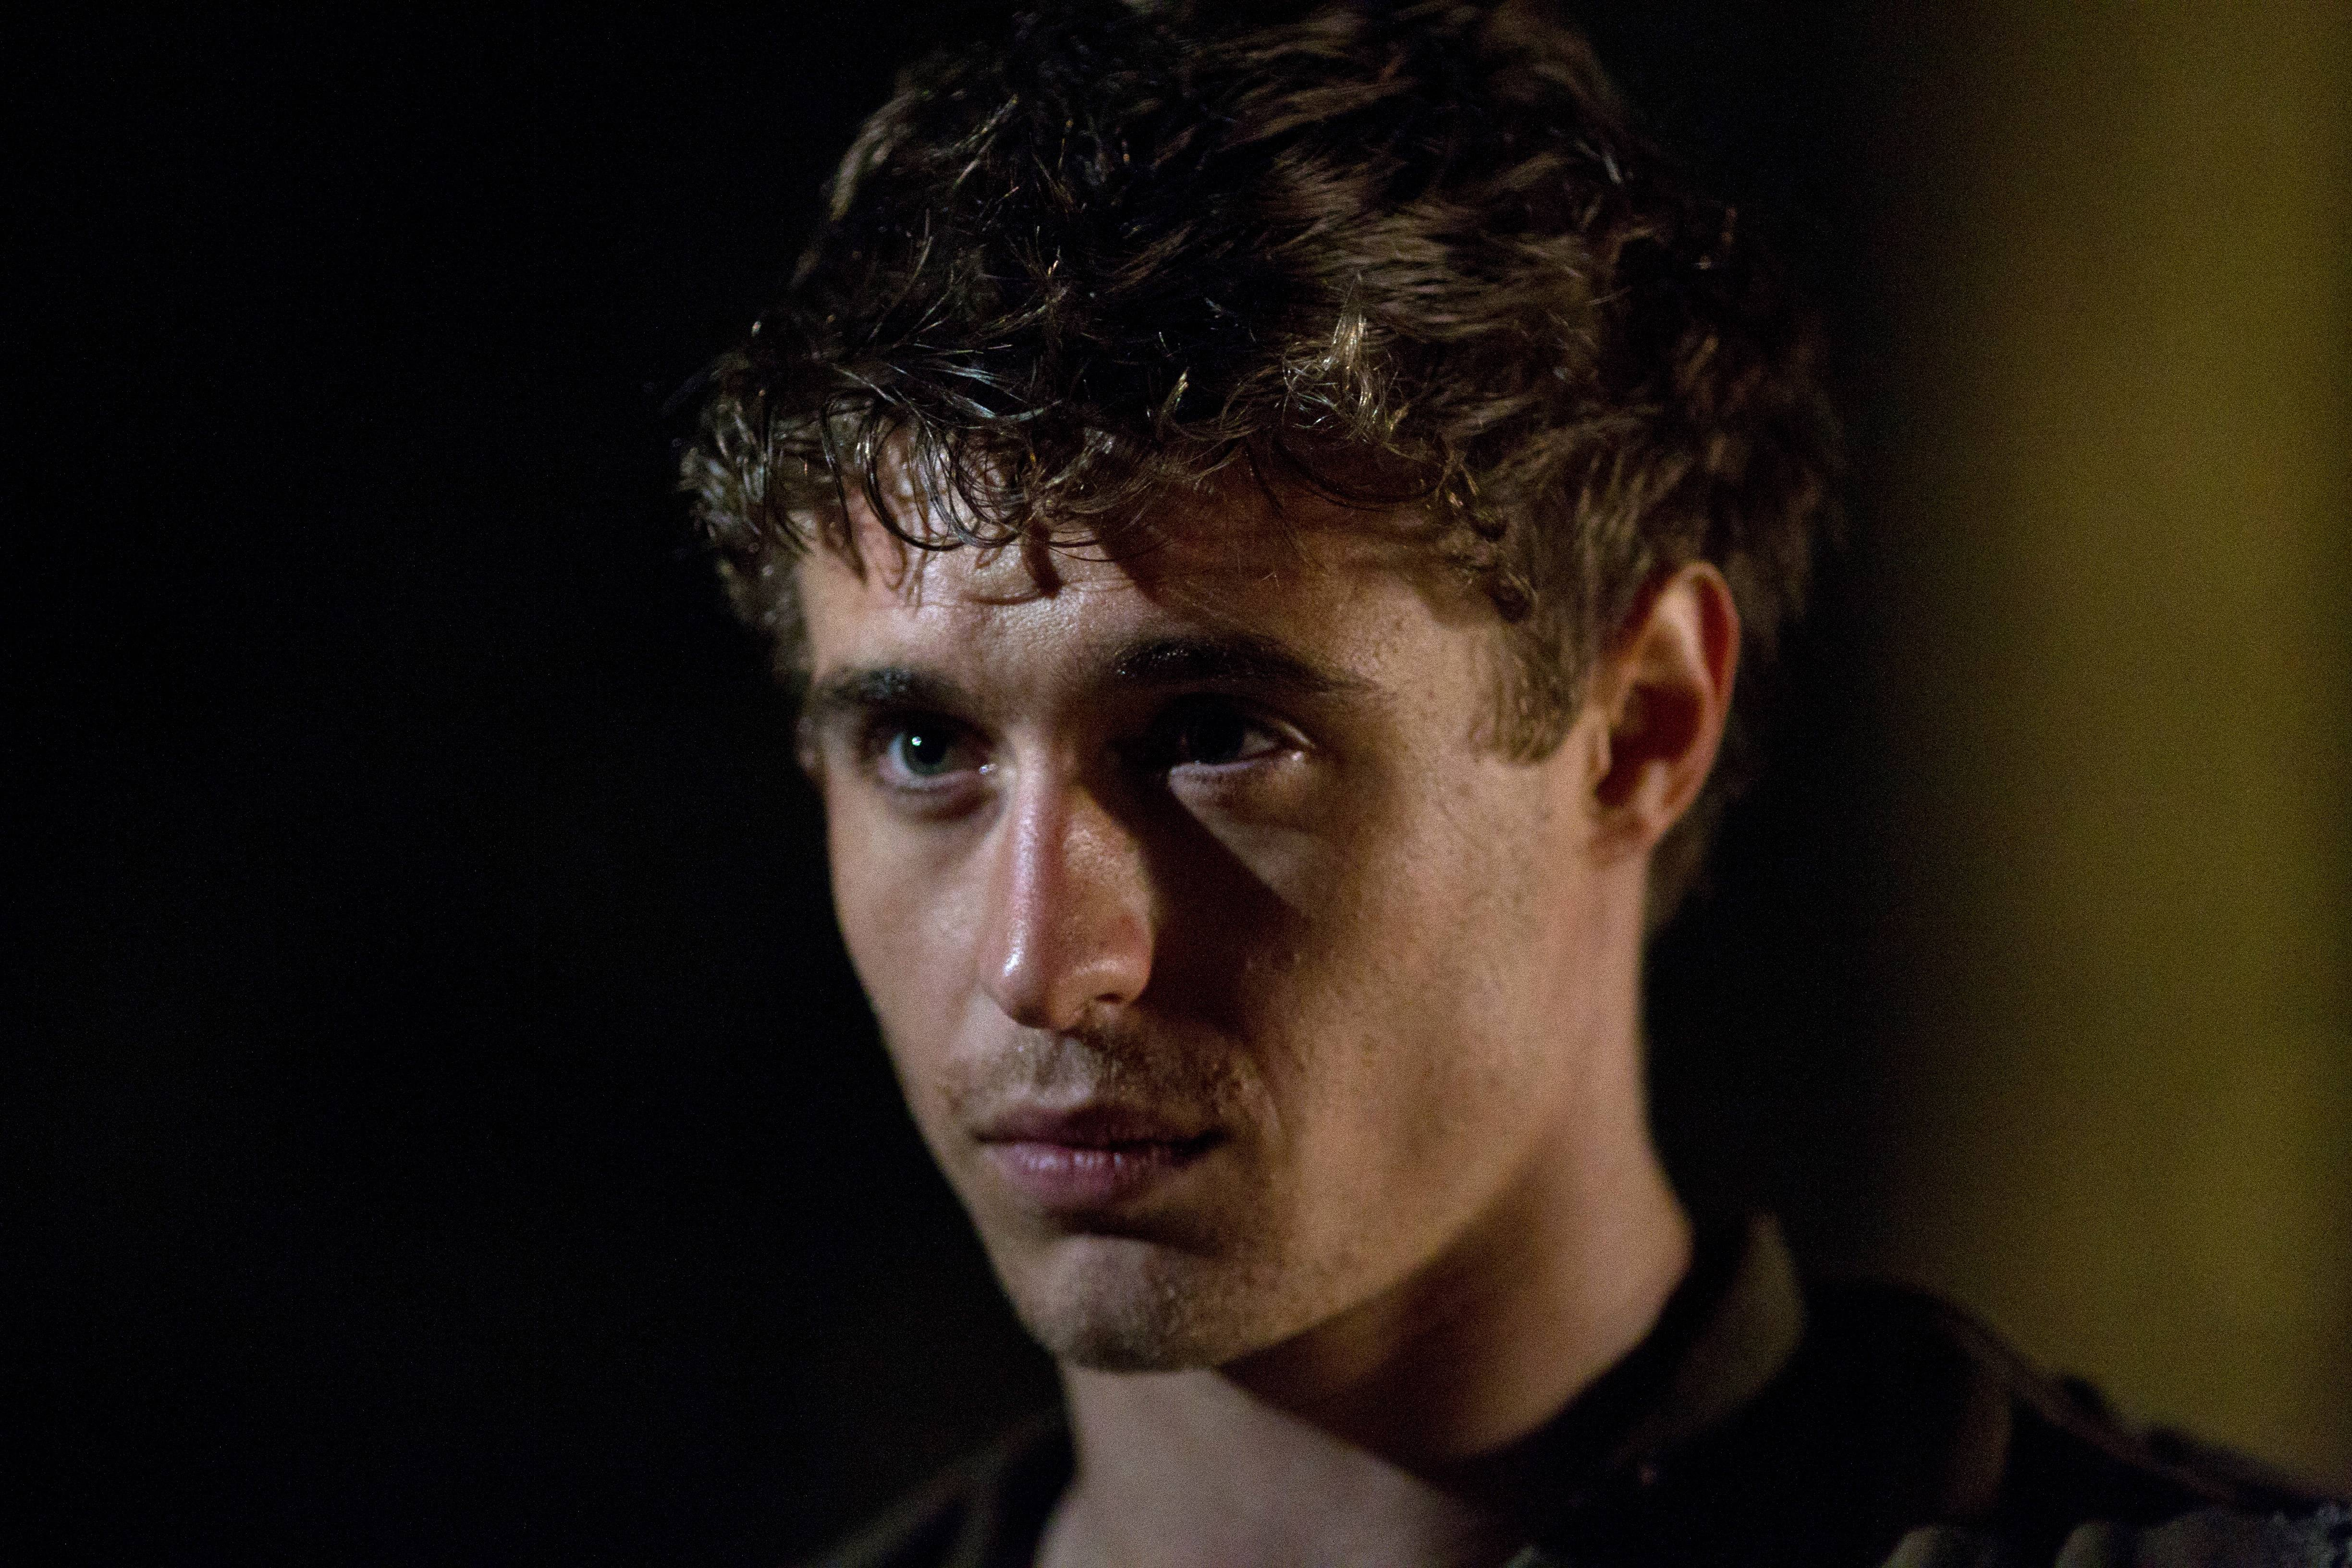 Max Irons photo, pics, wallpaper - photo #